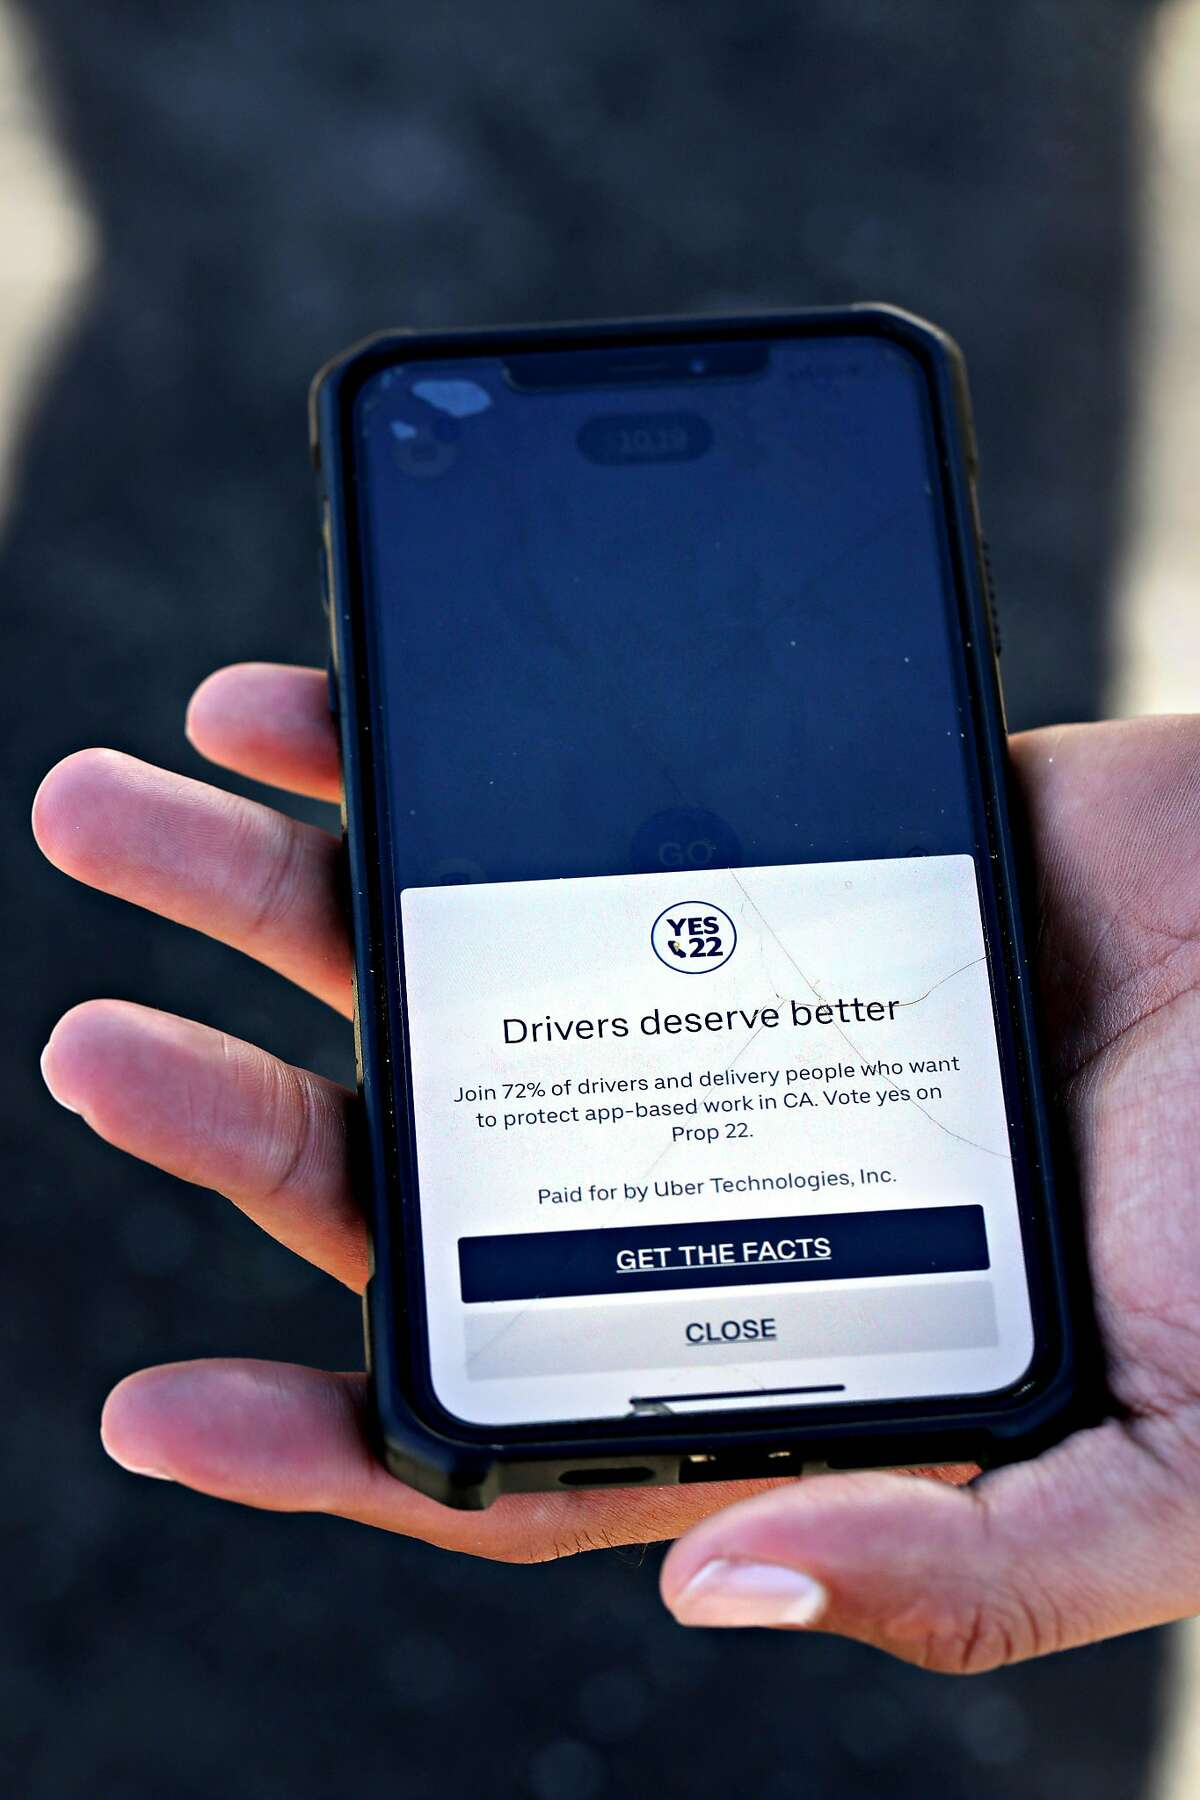 Jorge Torres shows the Prop. 22 ad that he and other Uber drivers see when they open the company's app.